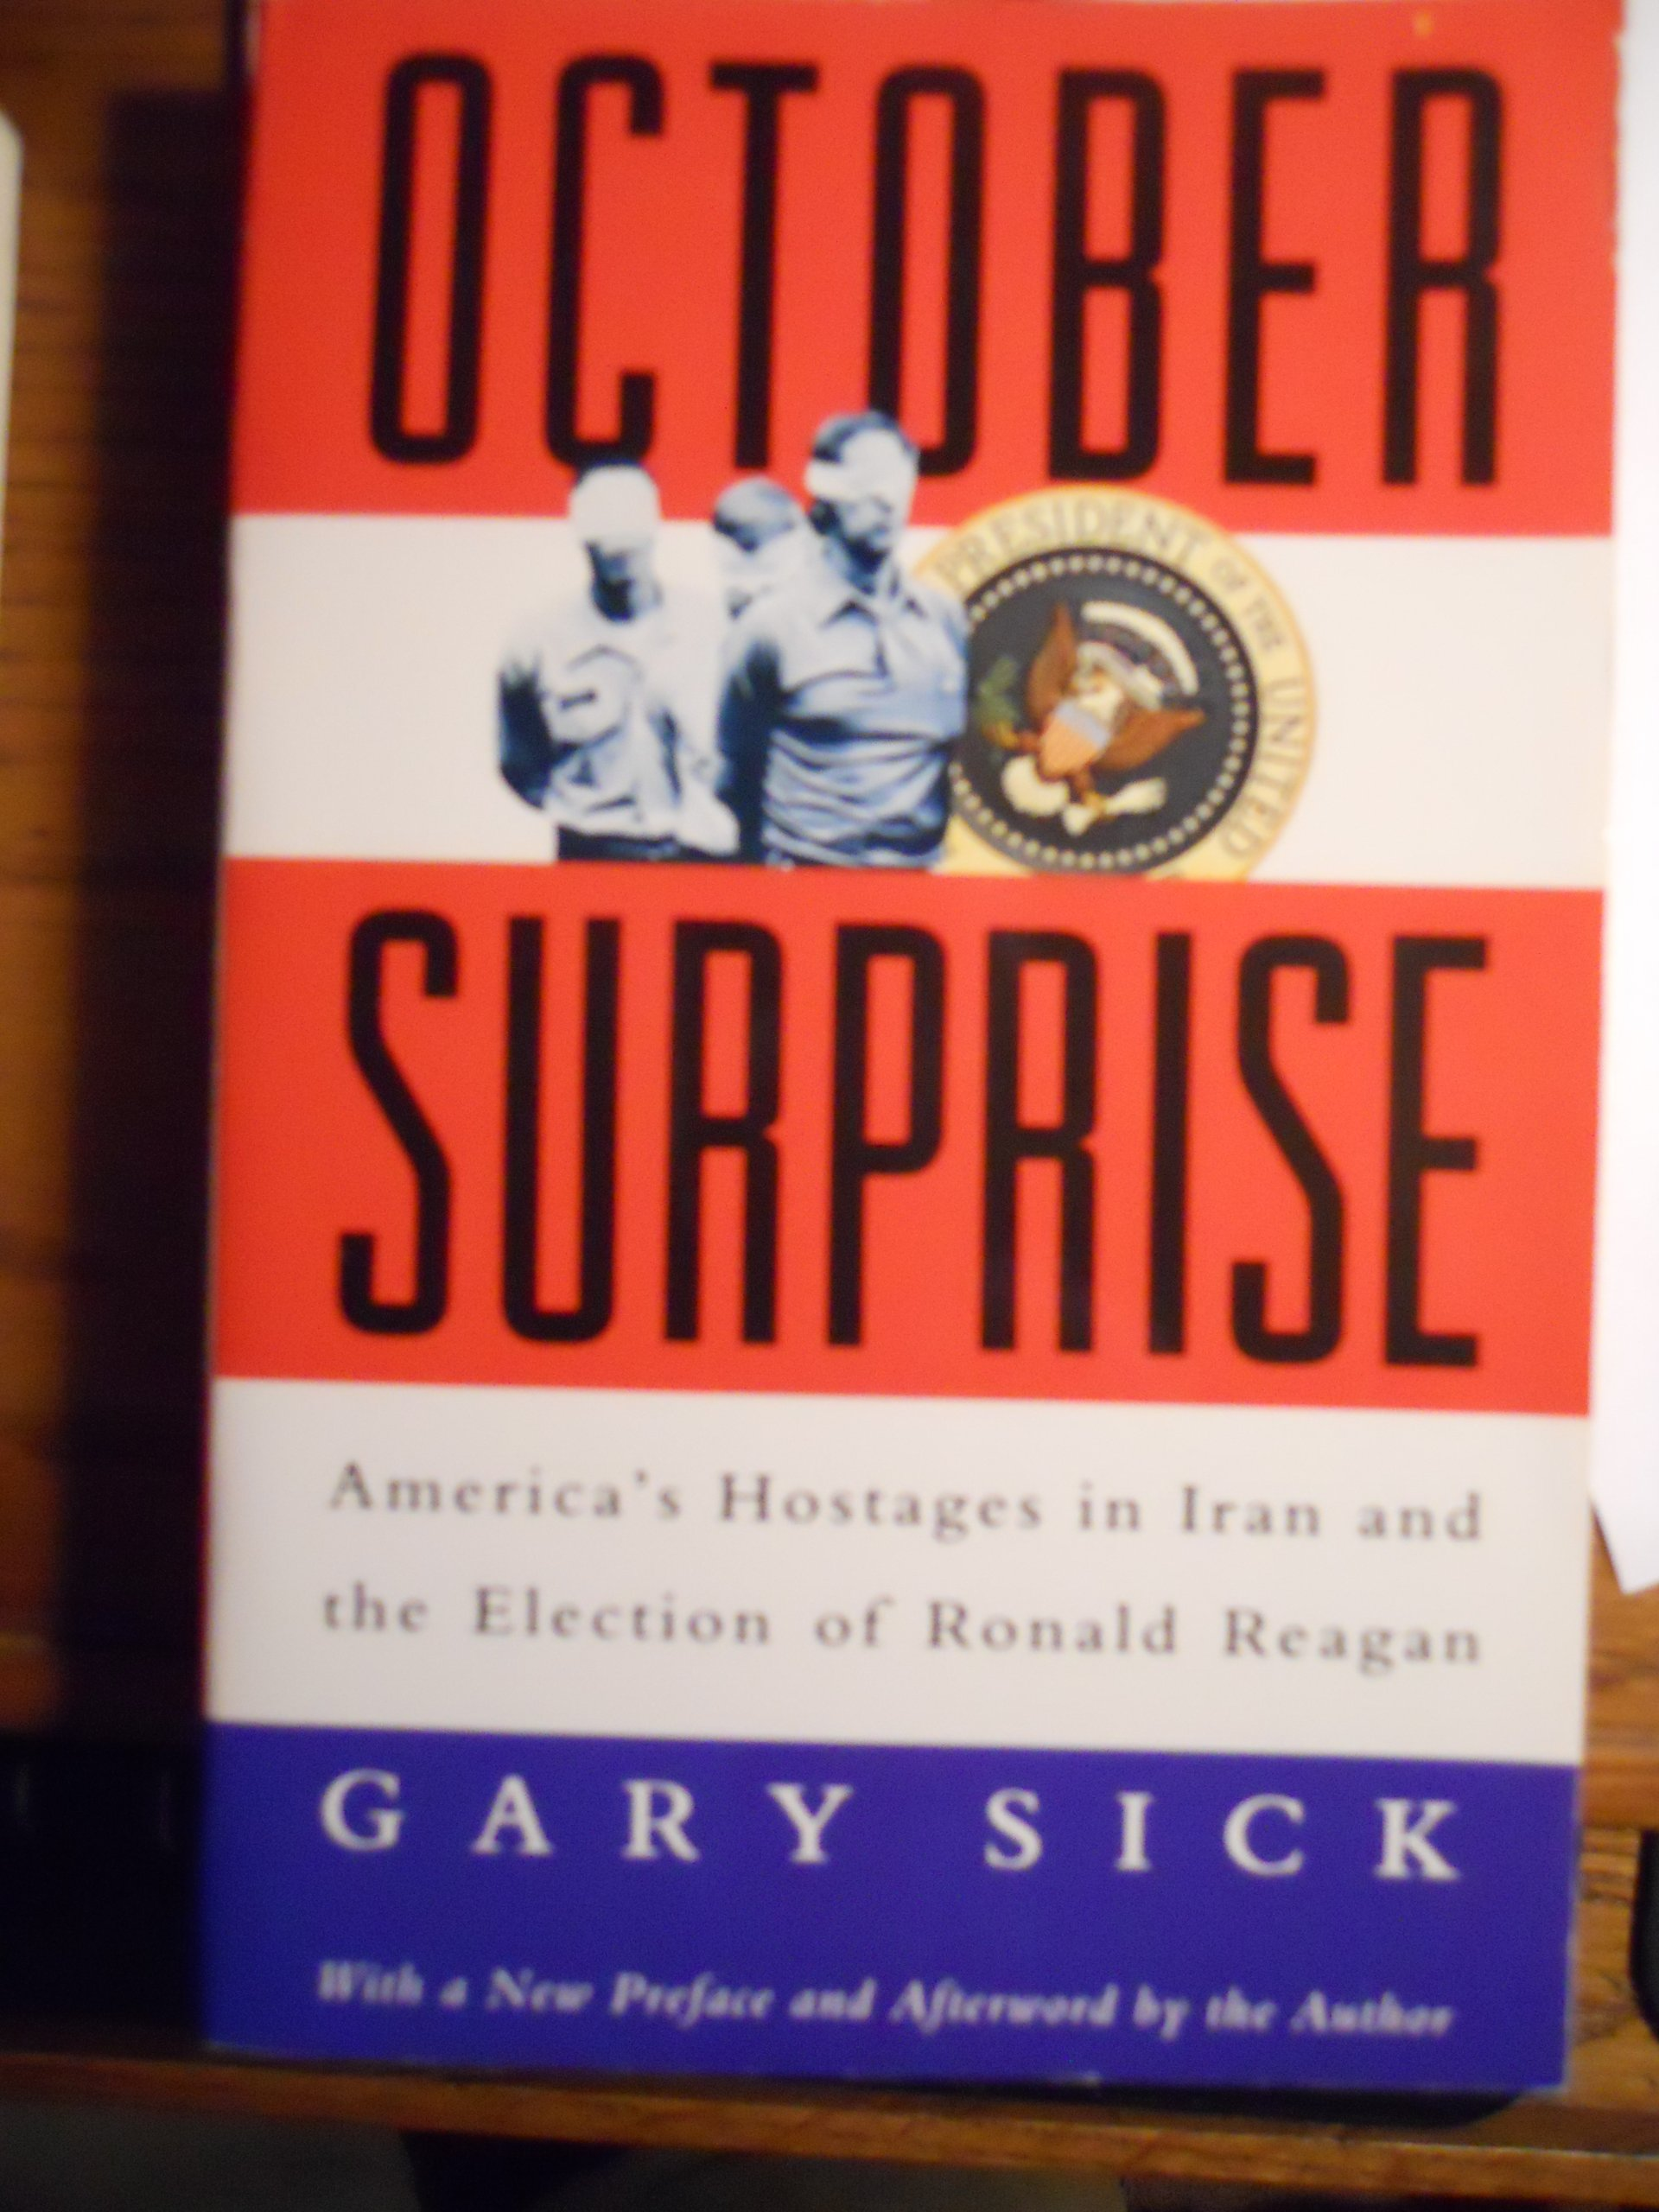 Image result for Garry Sick iran october surprise